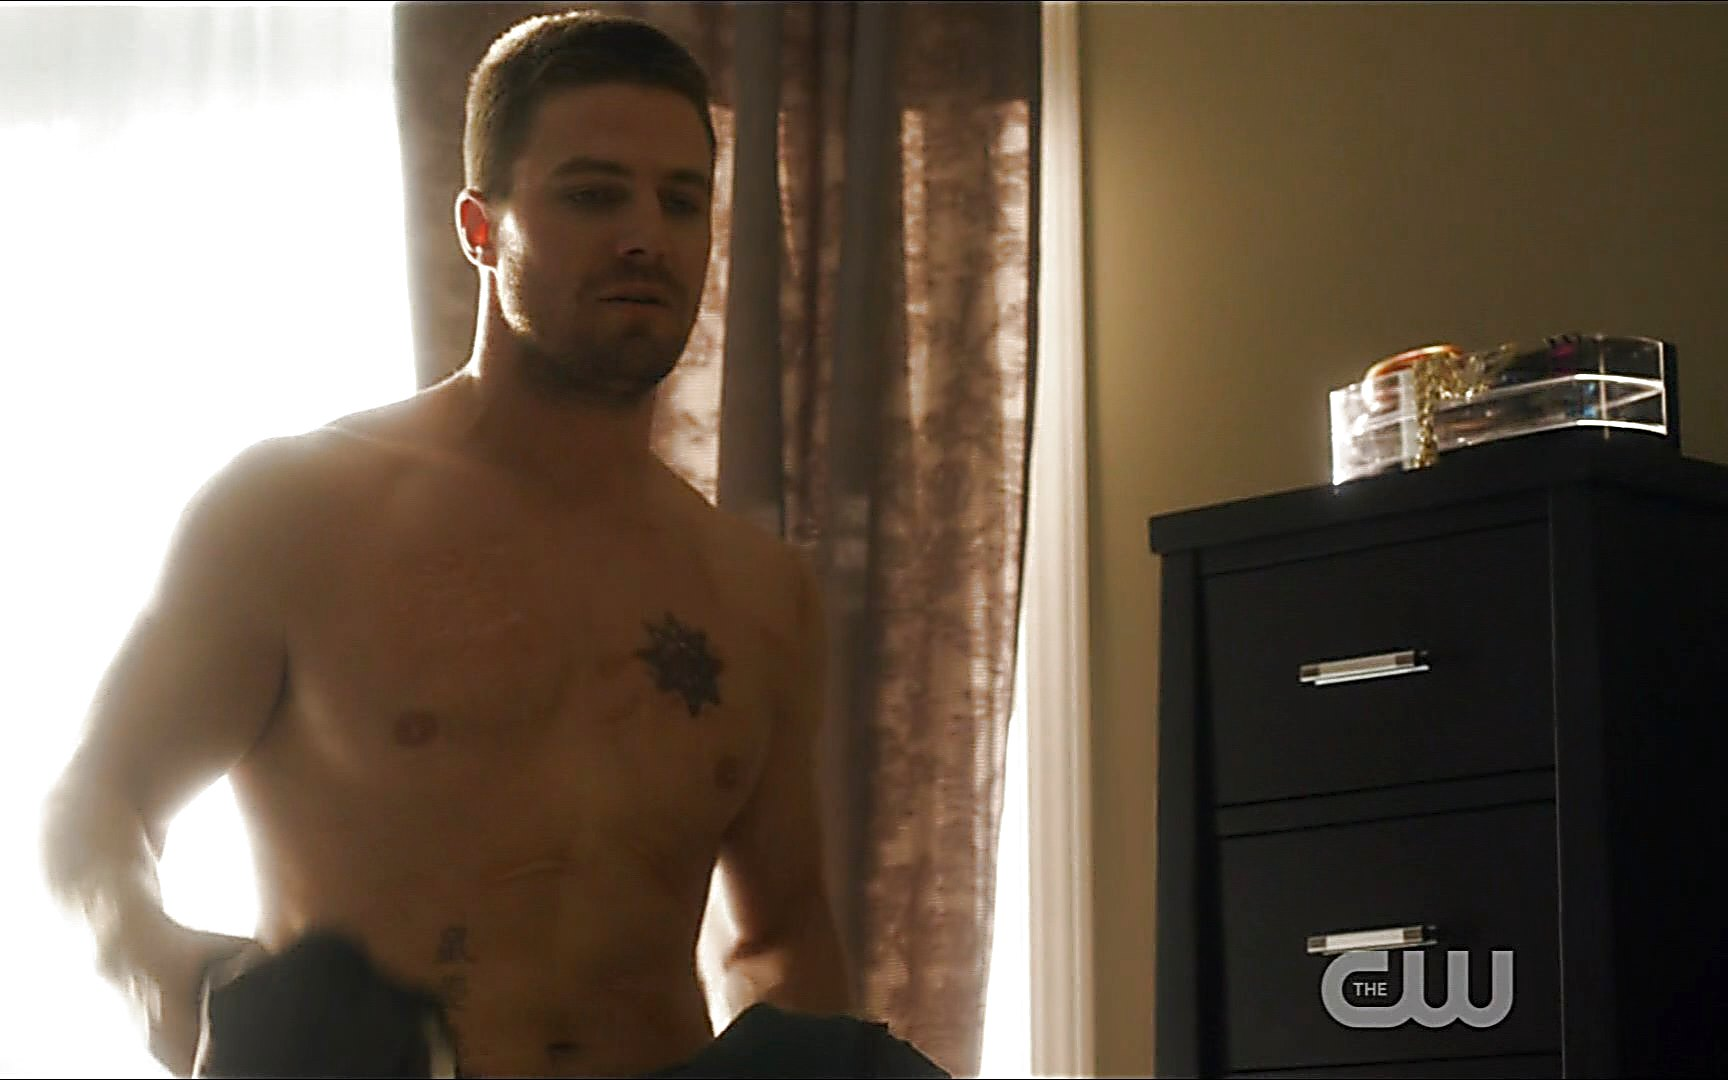 Stephen Amell sexy shirtless scene October 17, 2015, 8pm